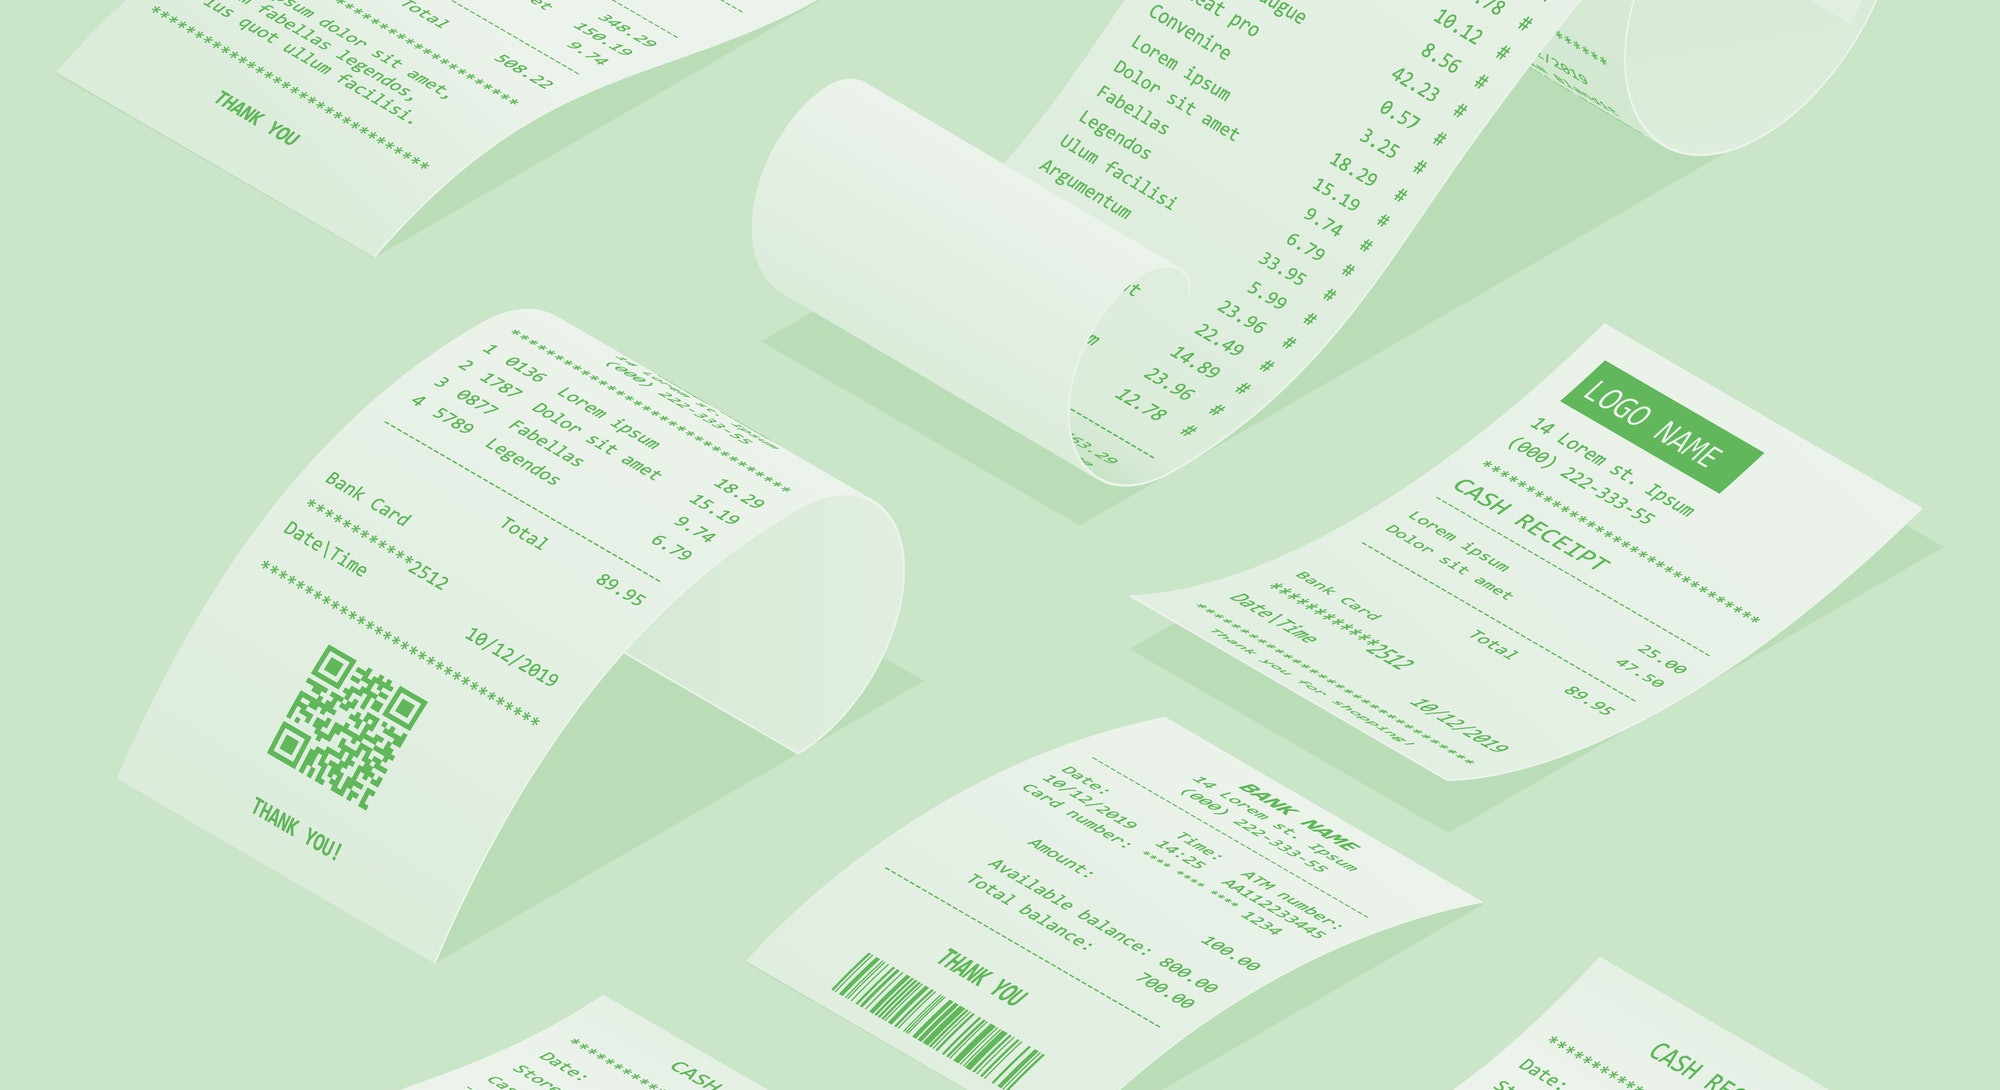 Isometric set of paper check and financial check isolated. Cash register sales receipts printed on thermal rolled paper. Cash receipt vector illustration